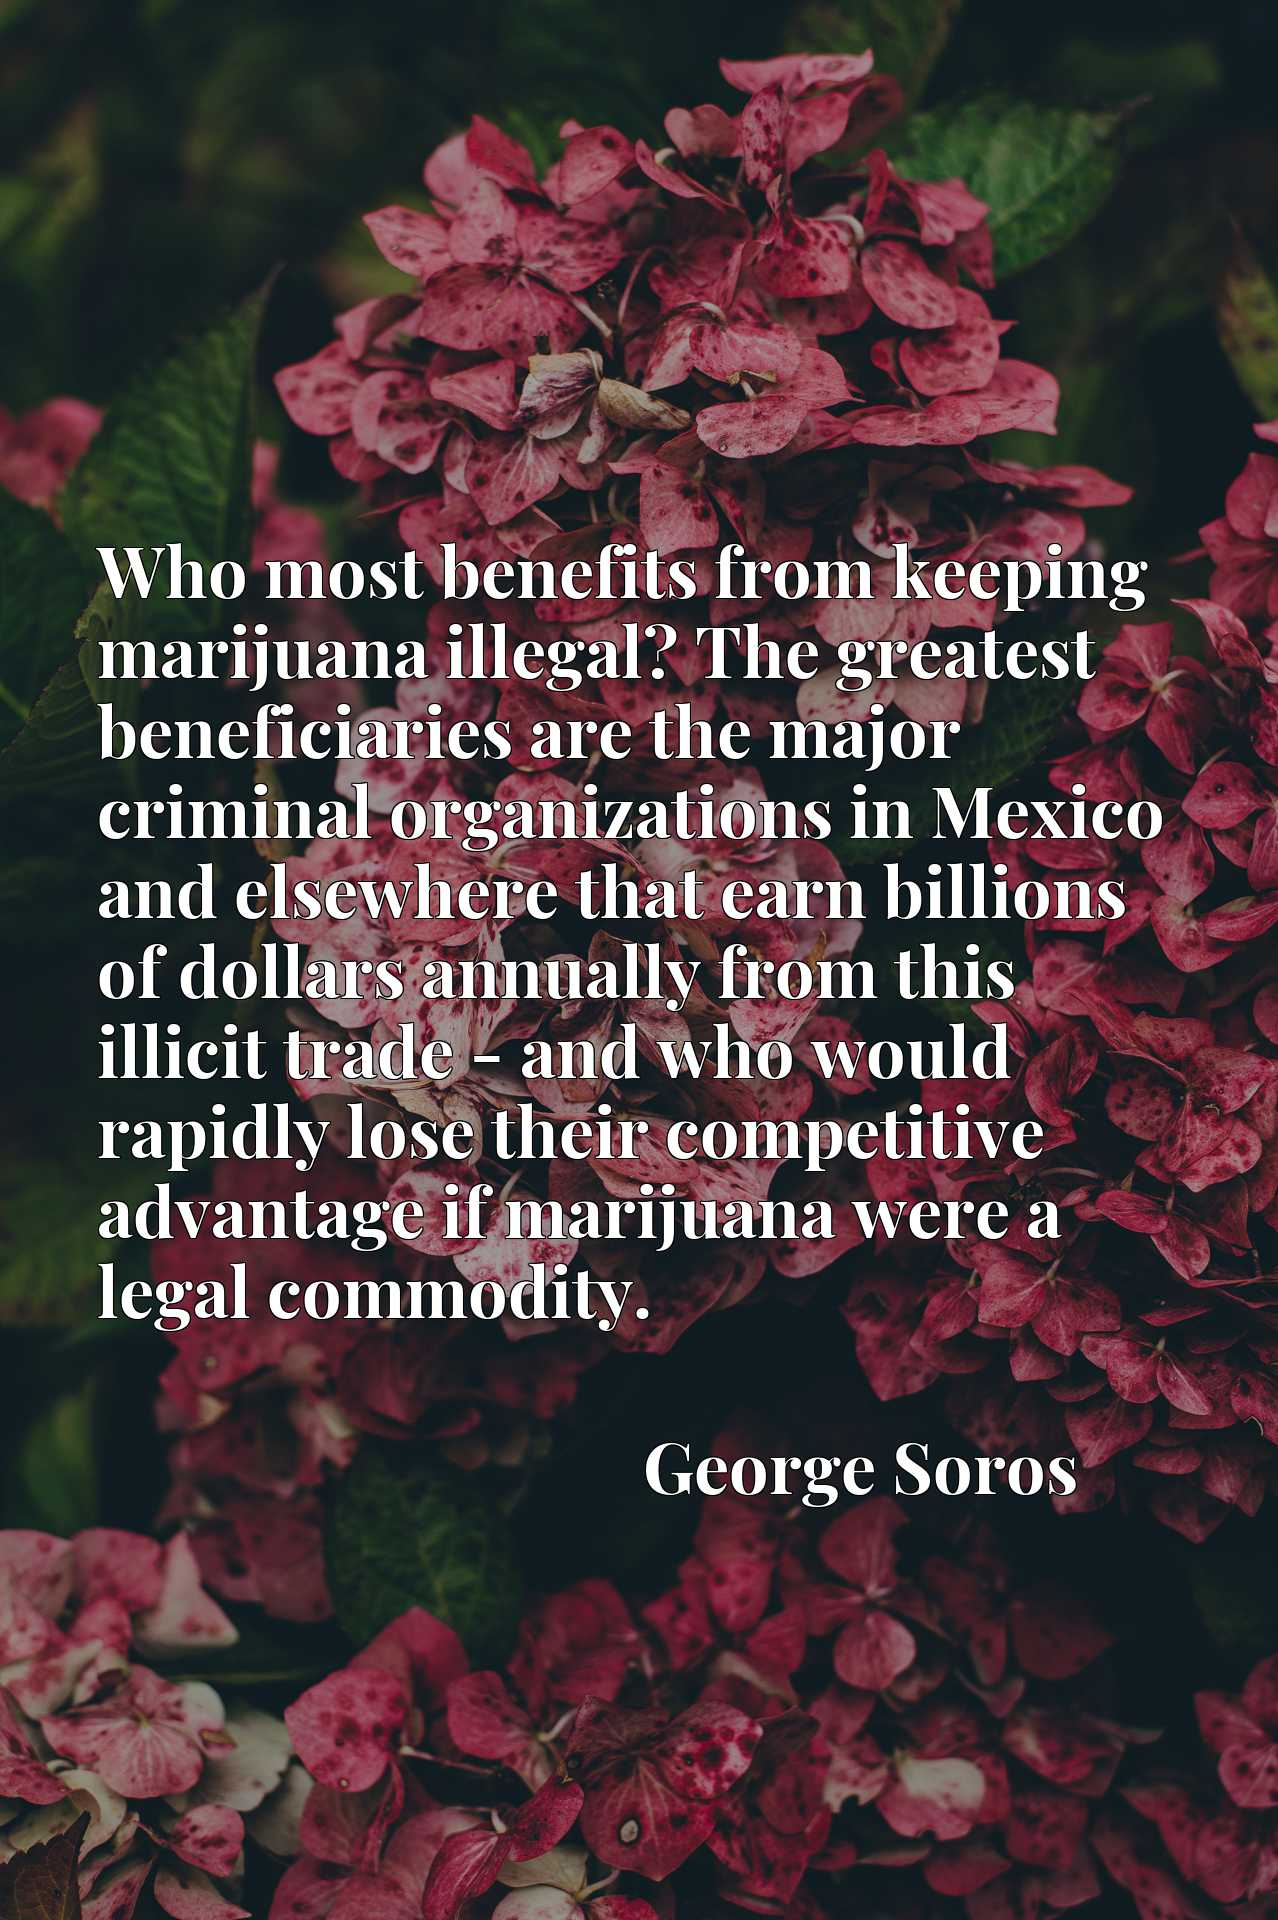 Who most benefits from keeping marijuana illegal? The greatest beneficiaries are the major criminal organizations in Mexico and elsewhere that earn billions of dollars annually from this illicit trade - and who would rapidly lose their competitive advantage if marijuana were a legal commodity.